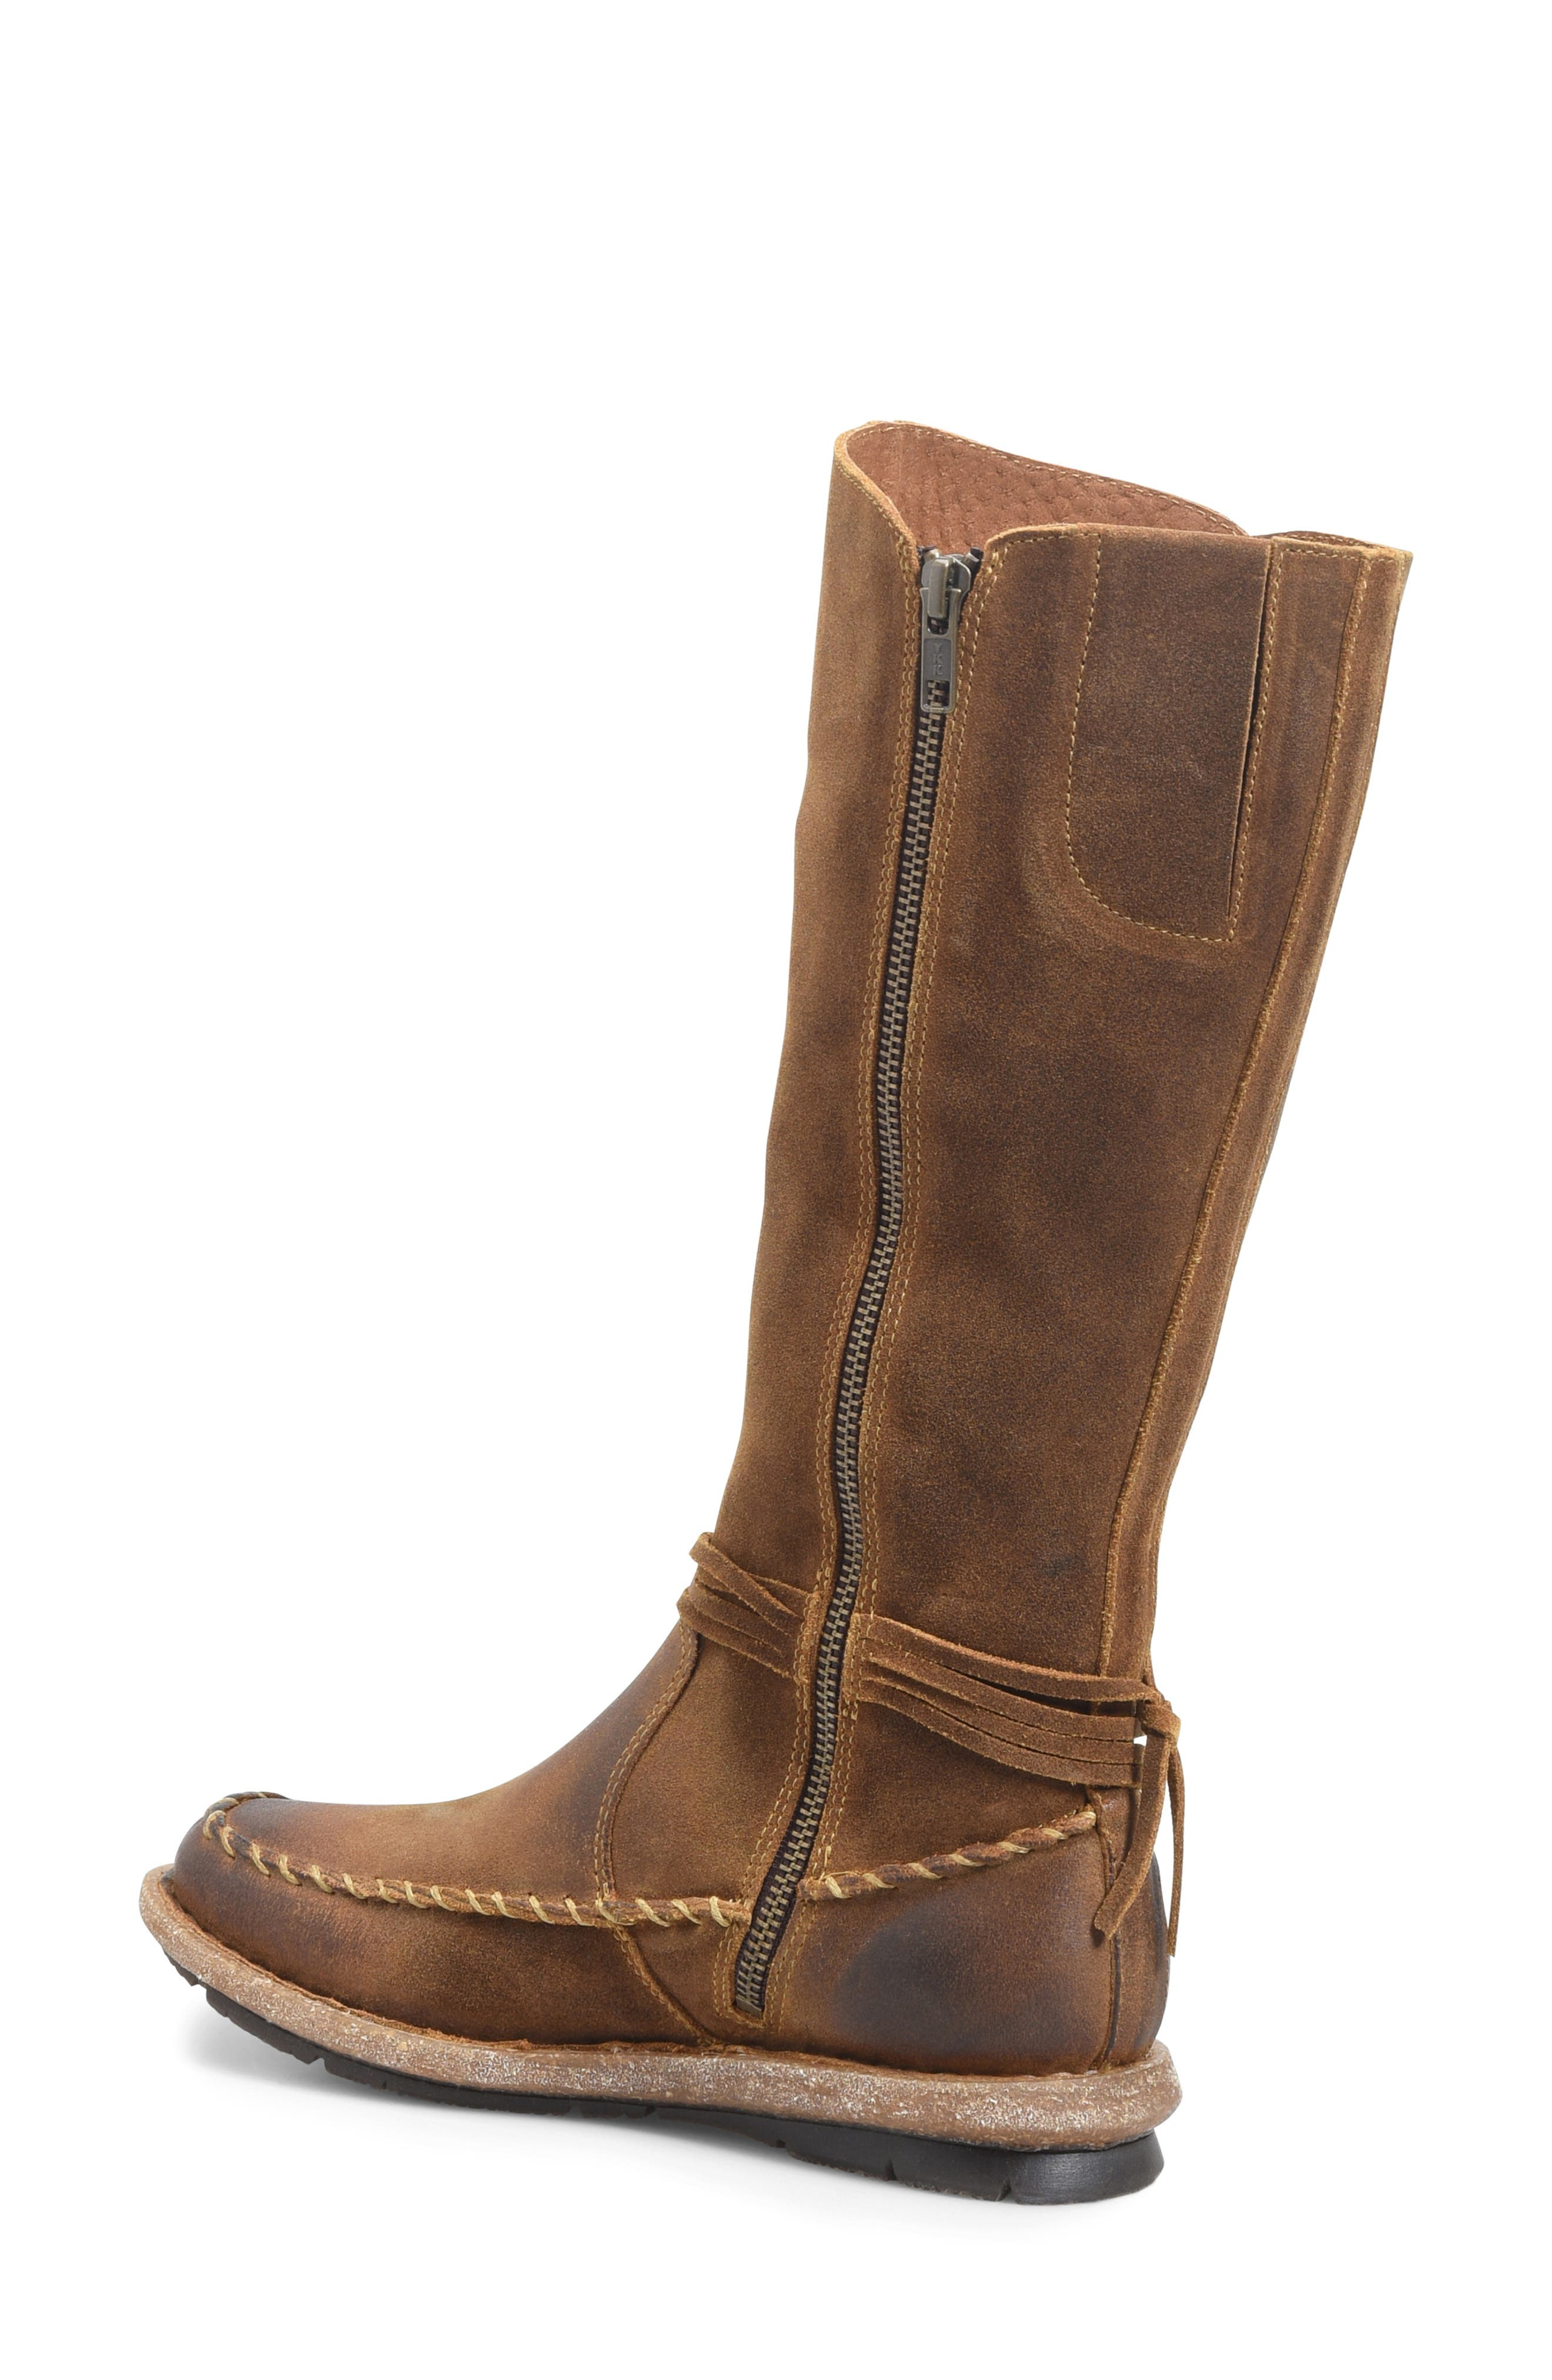 Torrey Boot,                             Alternate thumbnail 2, color,                             RUST DISTRESSED LEATHER